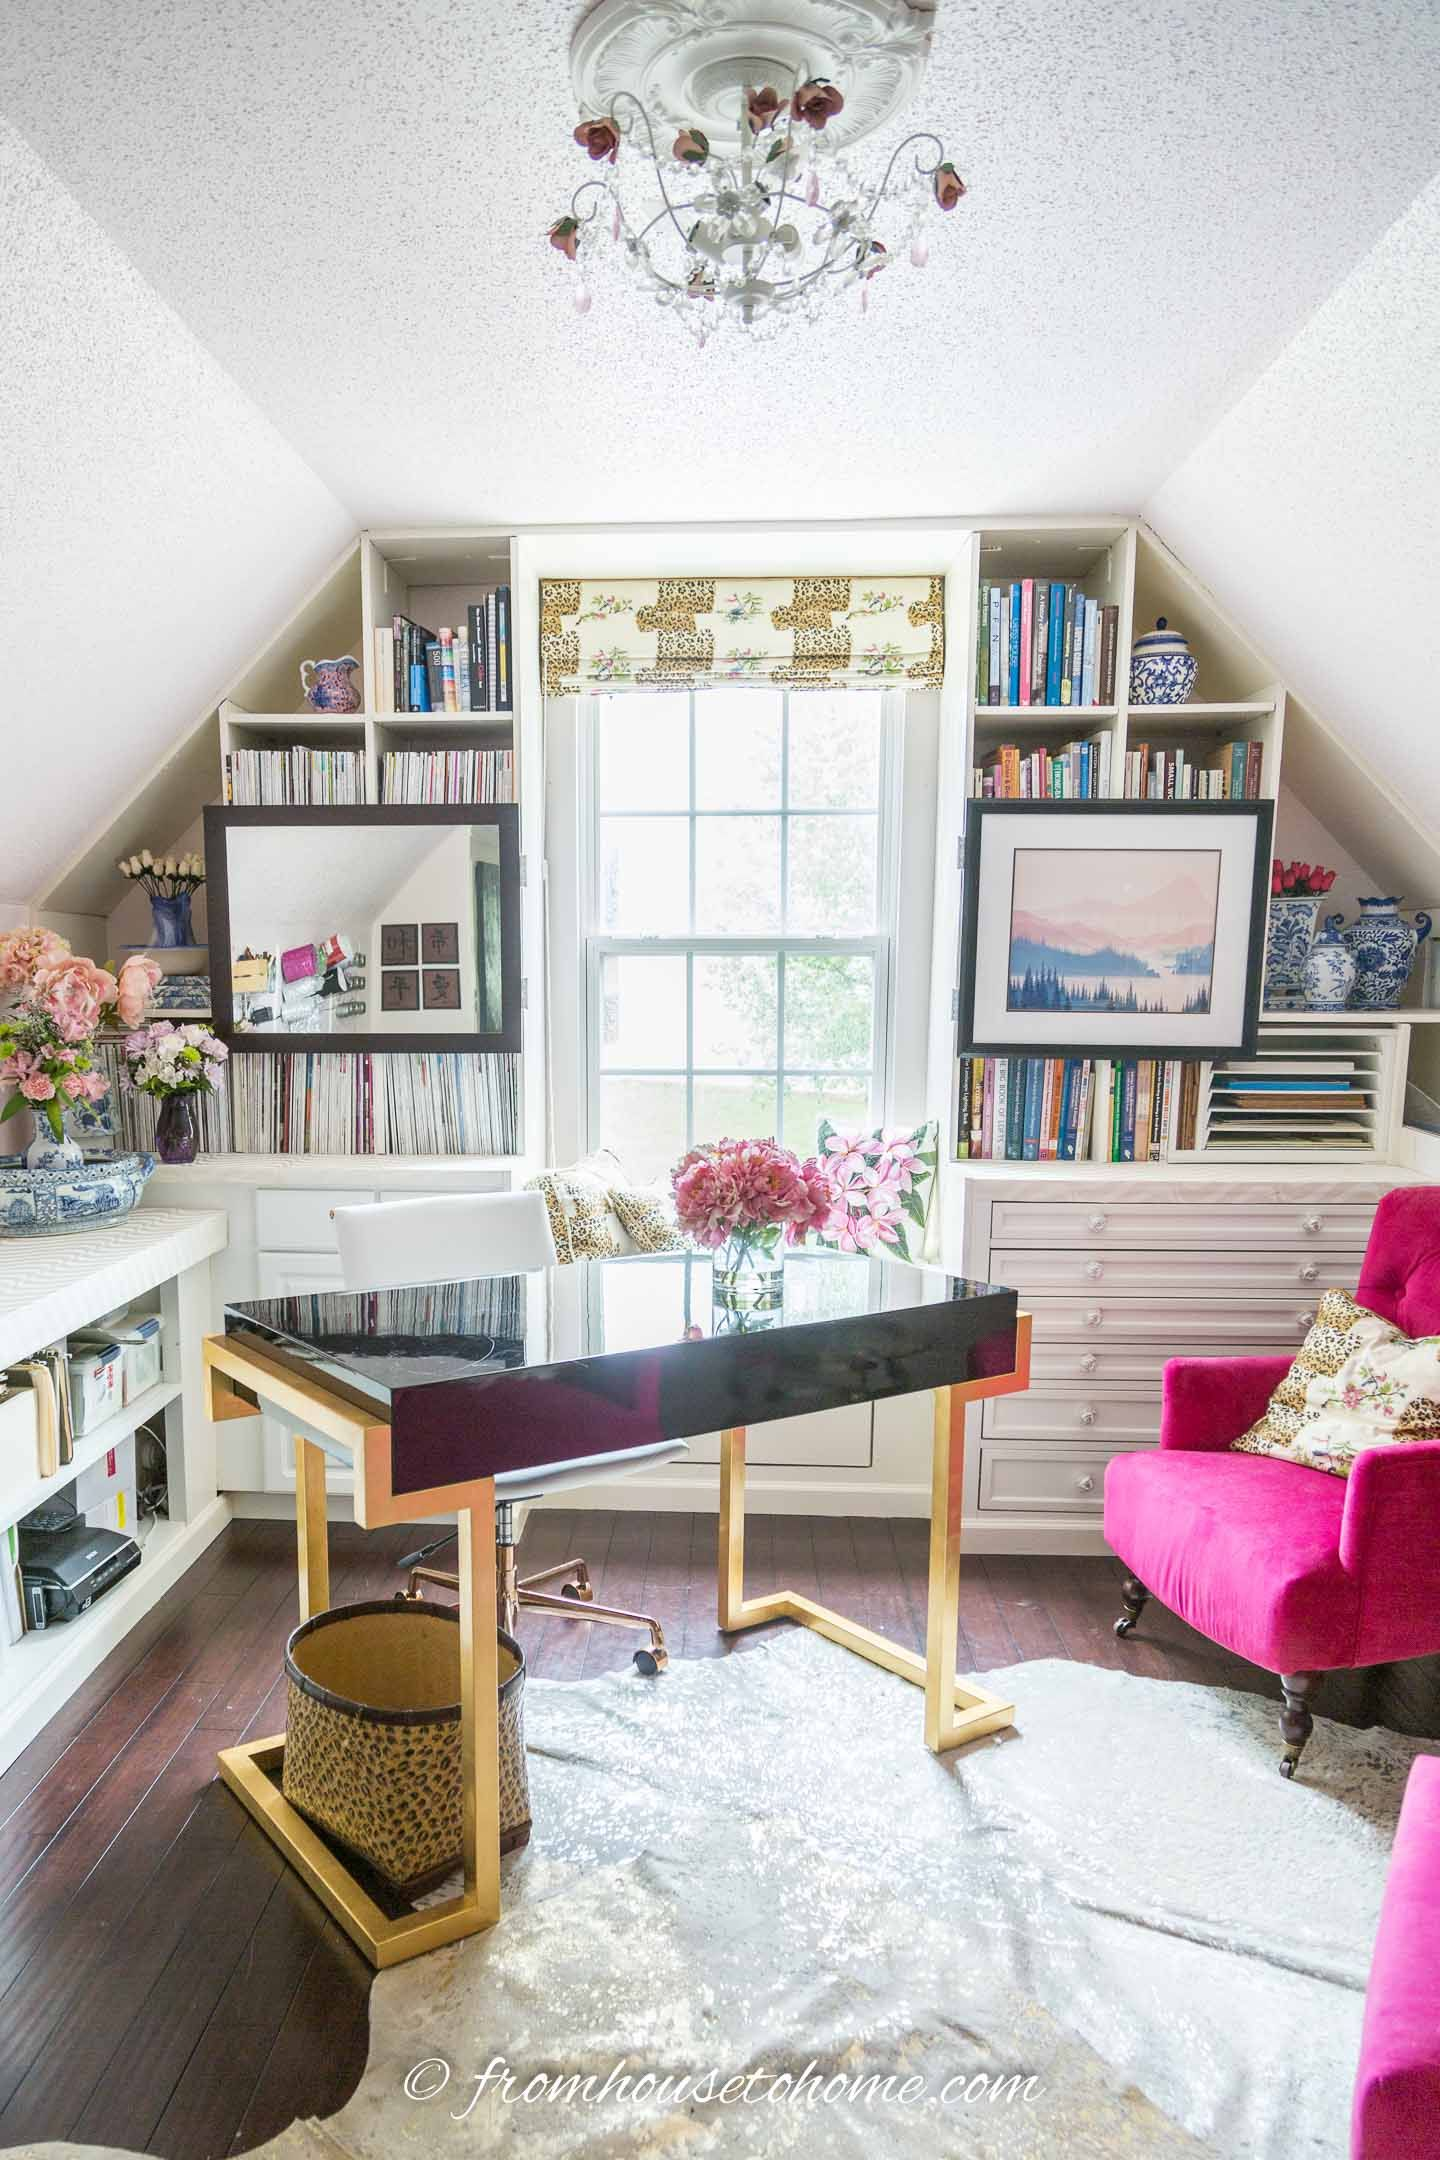 Room Maker Design: Cozy Reading Room Ideas: 15 Creative Small Home Library